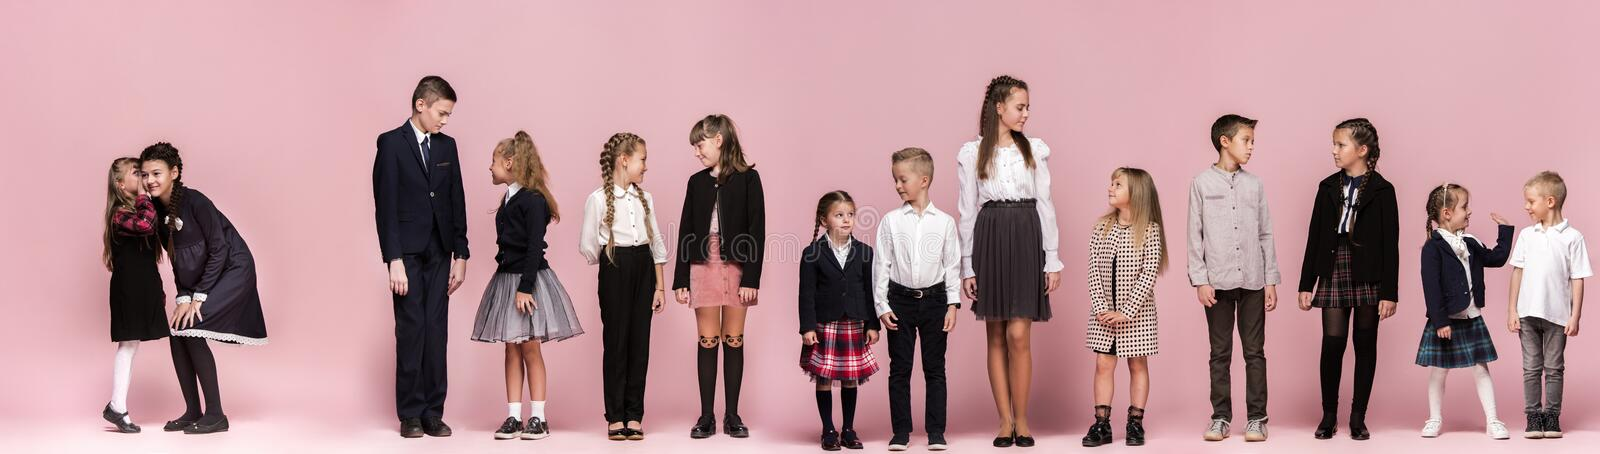 Cute stylish children on pink studio background. The beautiful teen girls and boy standing together stock image